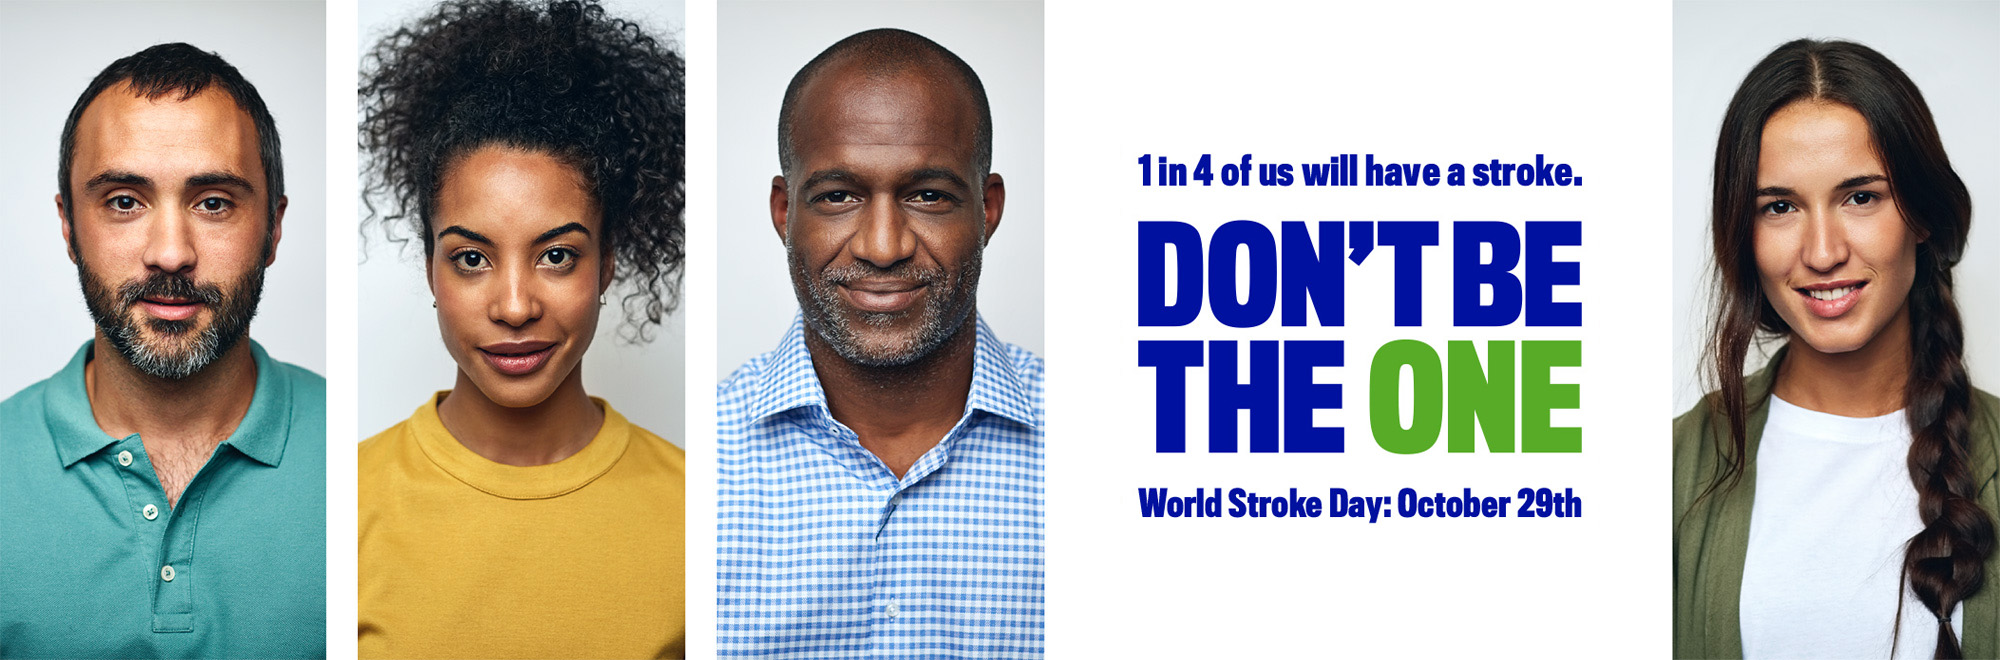 World Stroke Day - October 29th 2019